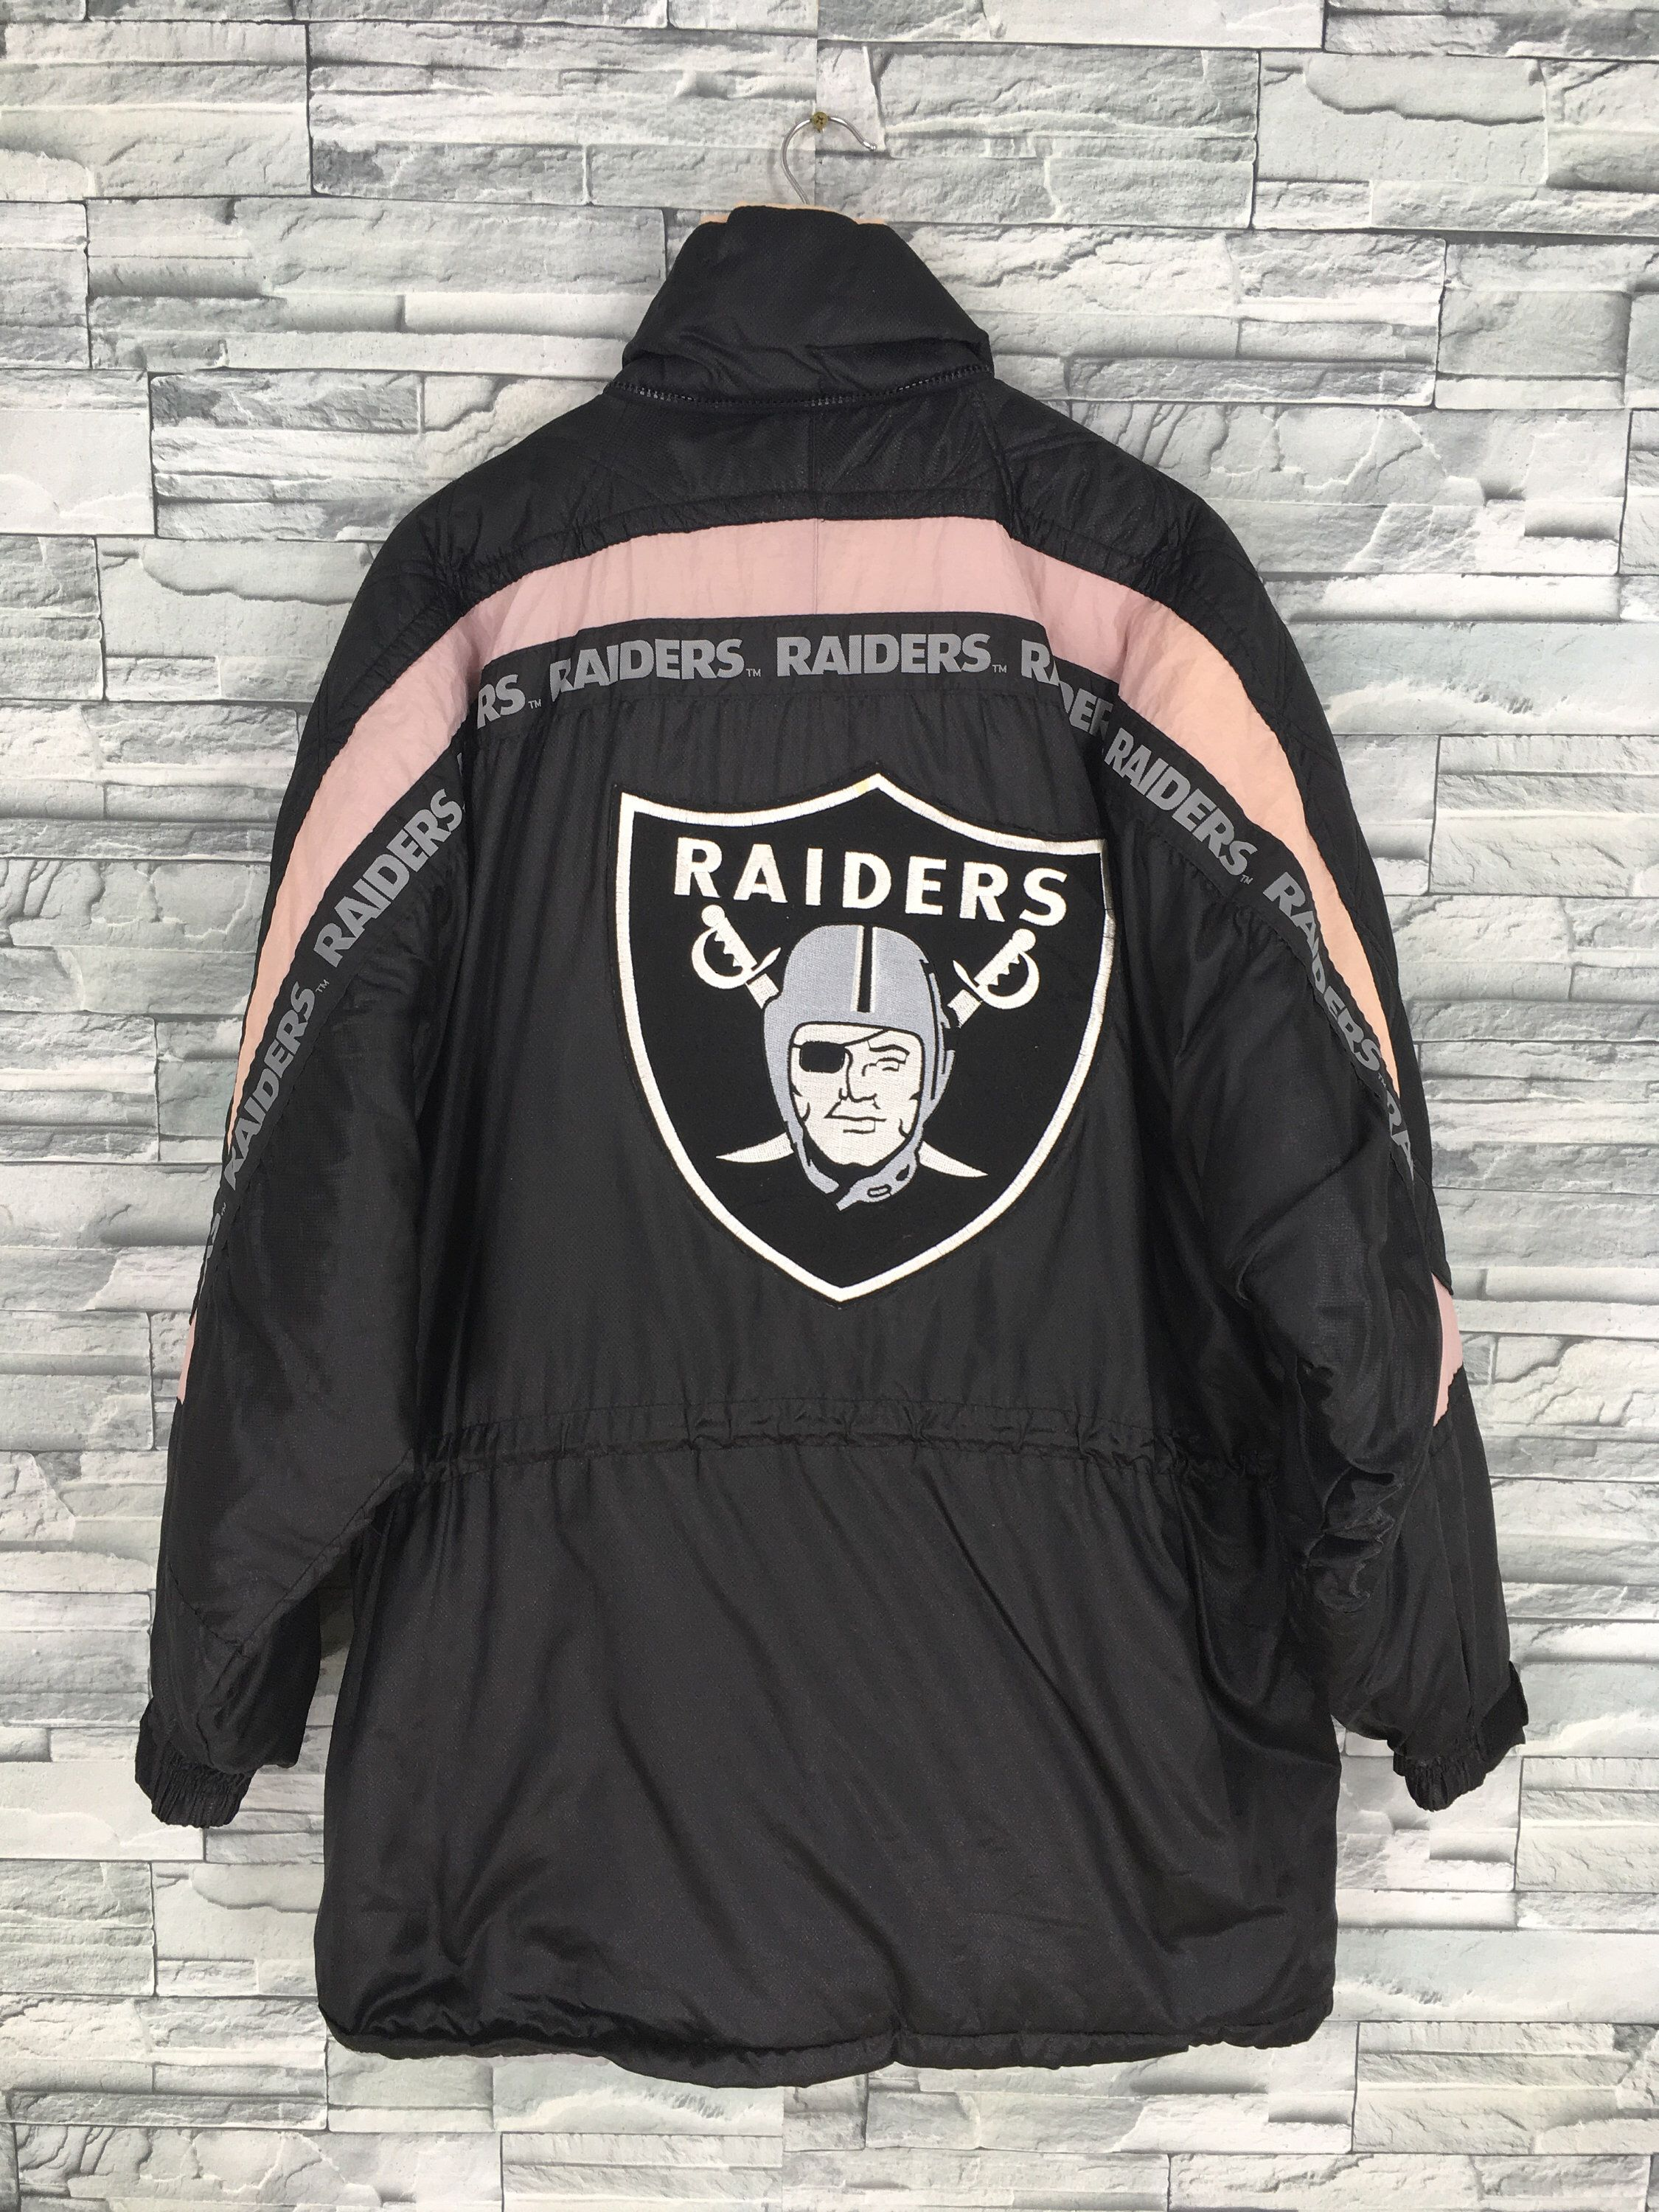 Excited To Share The Latest Addition To My Etsy Shop Oakland Raiders Parka Bomber Jacket Xlarge Vinta Cold Weather Jackets Football Jackets American Football [ 3000 x 2250 Pixel ]